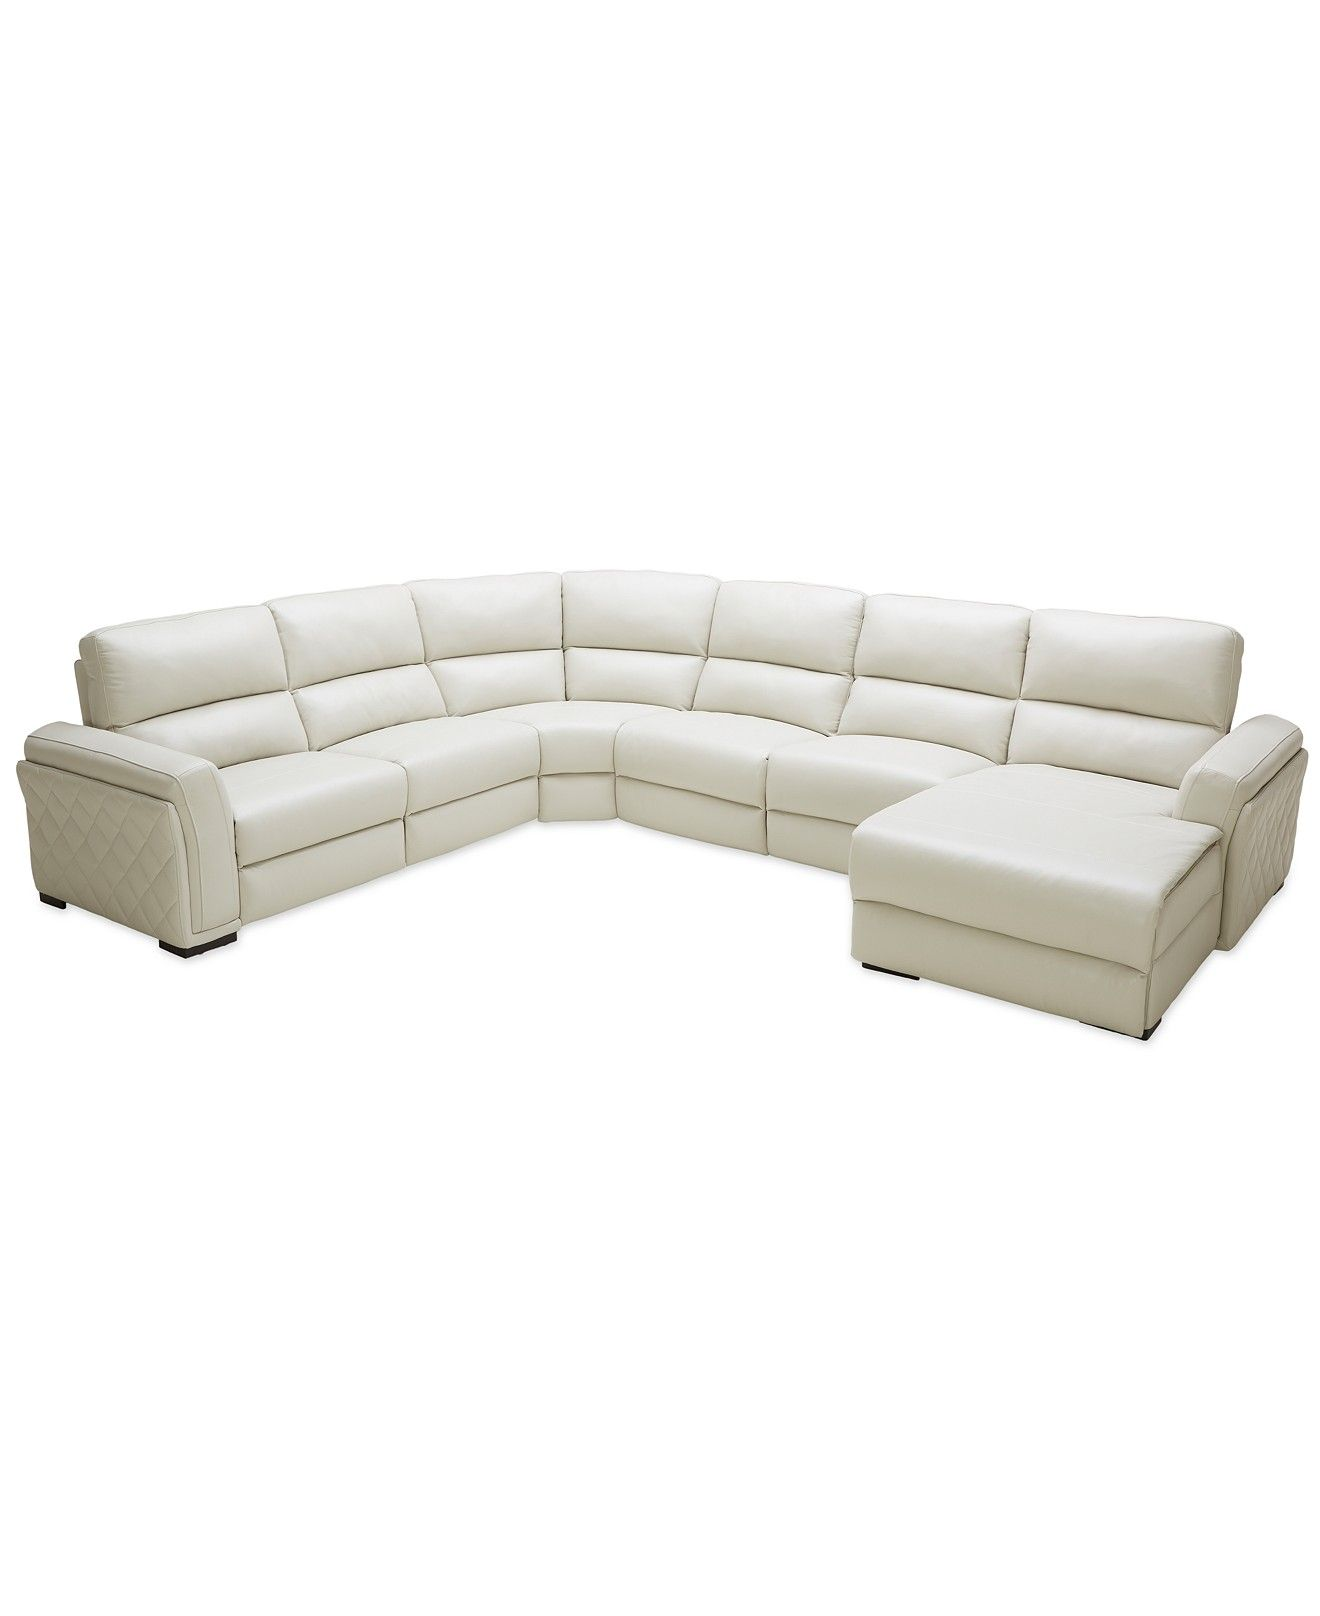 Jessi 6 pc Leather Sectional Sofa with Chaise with 2 Power Recliners